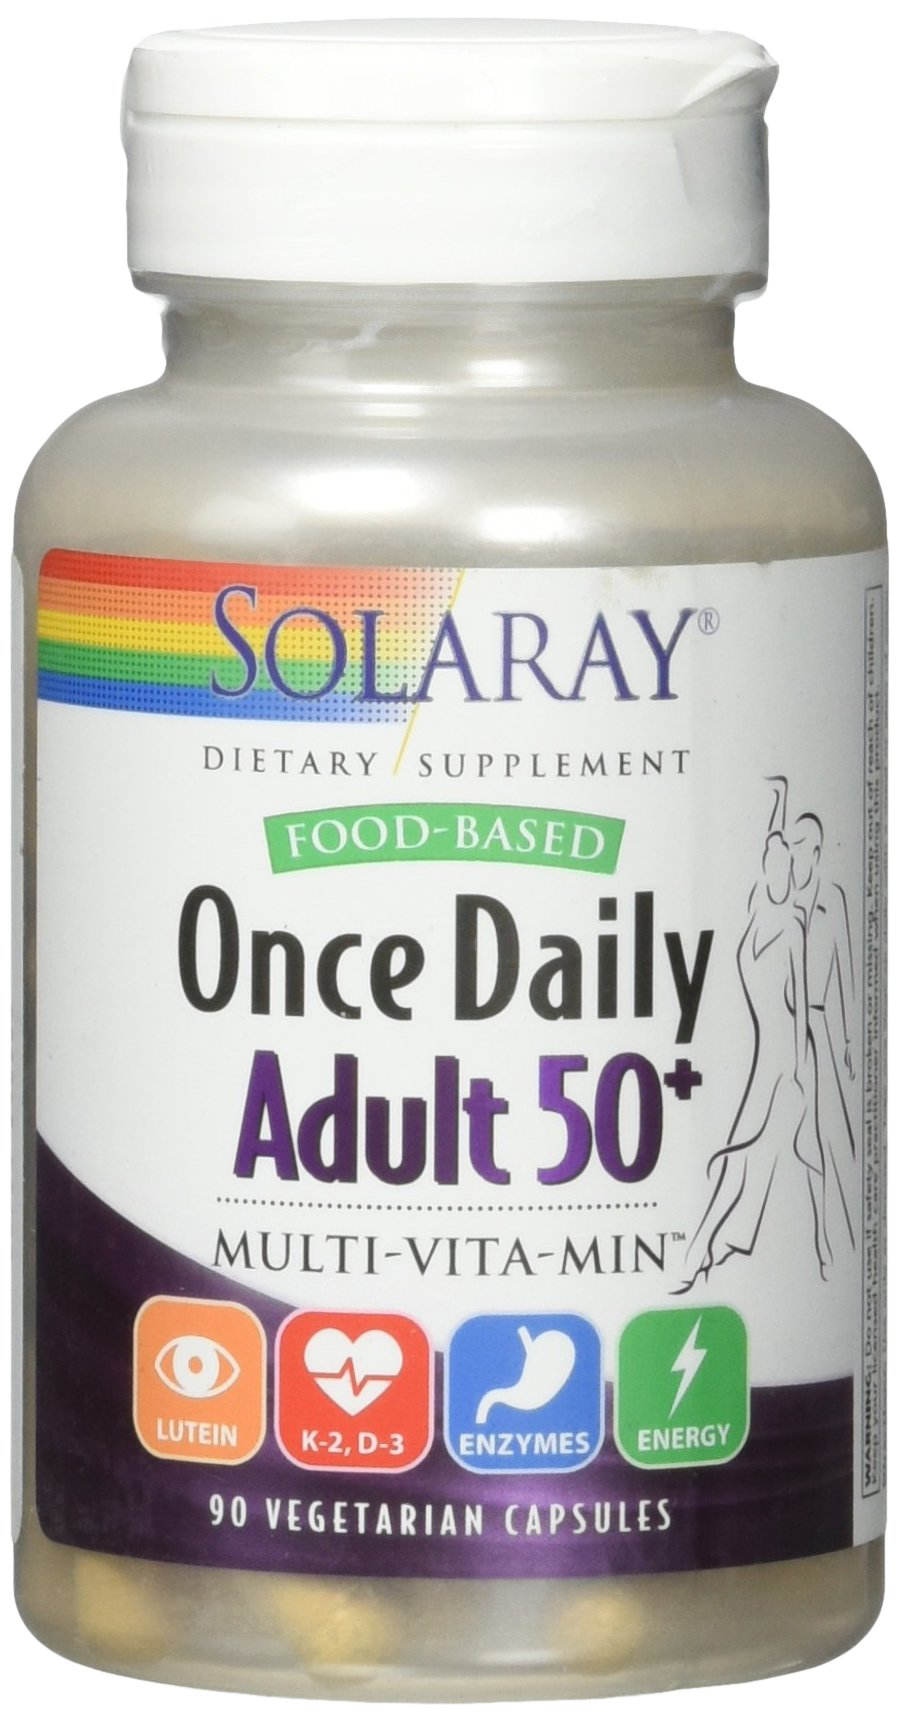 Solaray Once Daily Adult 50+ VCapsules, 90 Count